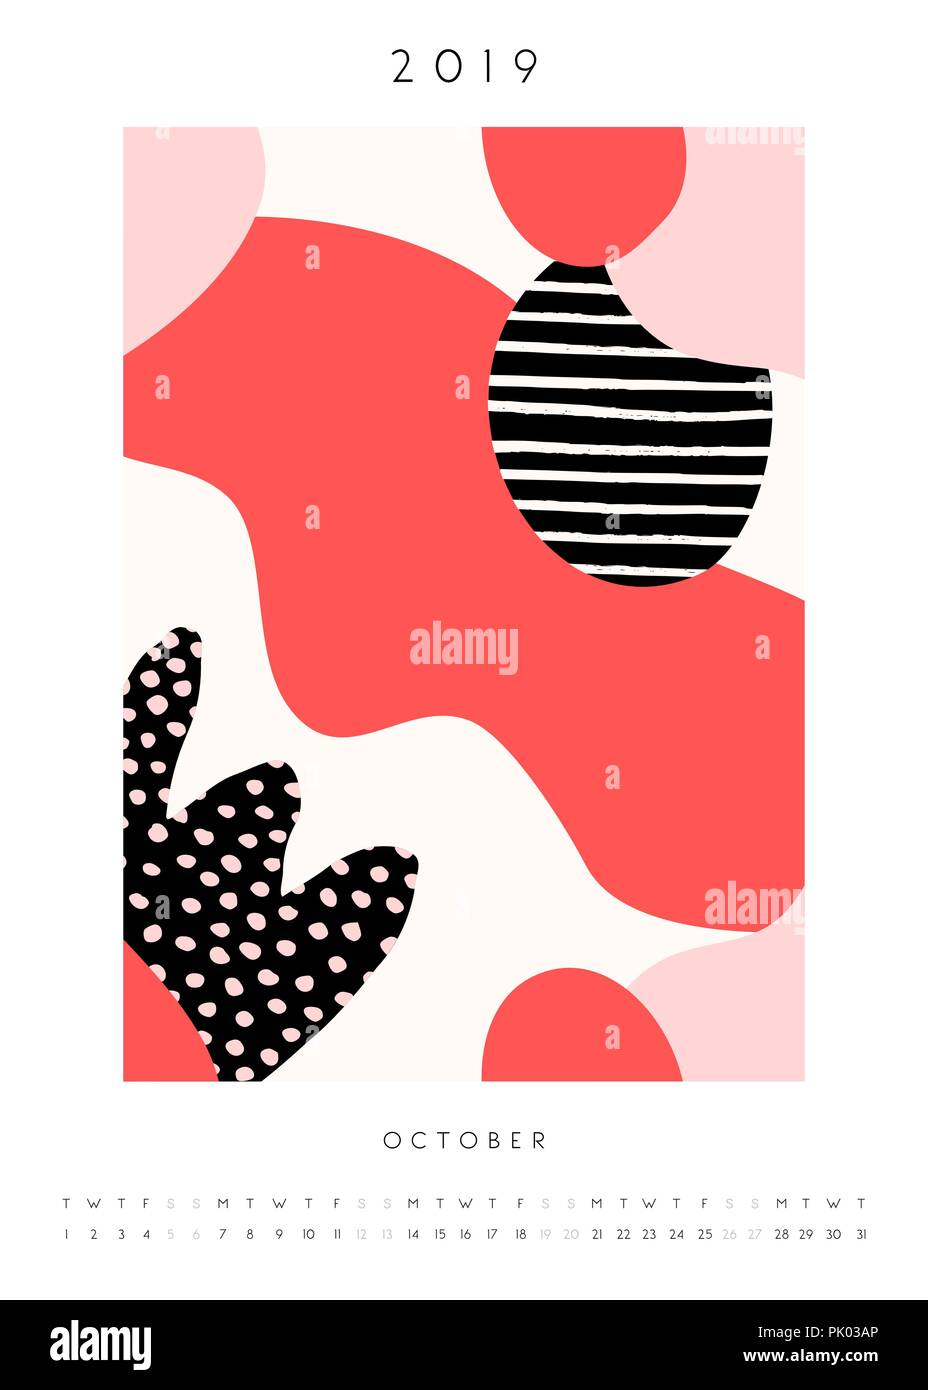 Printable A4 Size October 2019 Calendar Template Collage Style